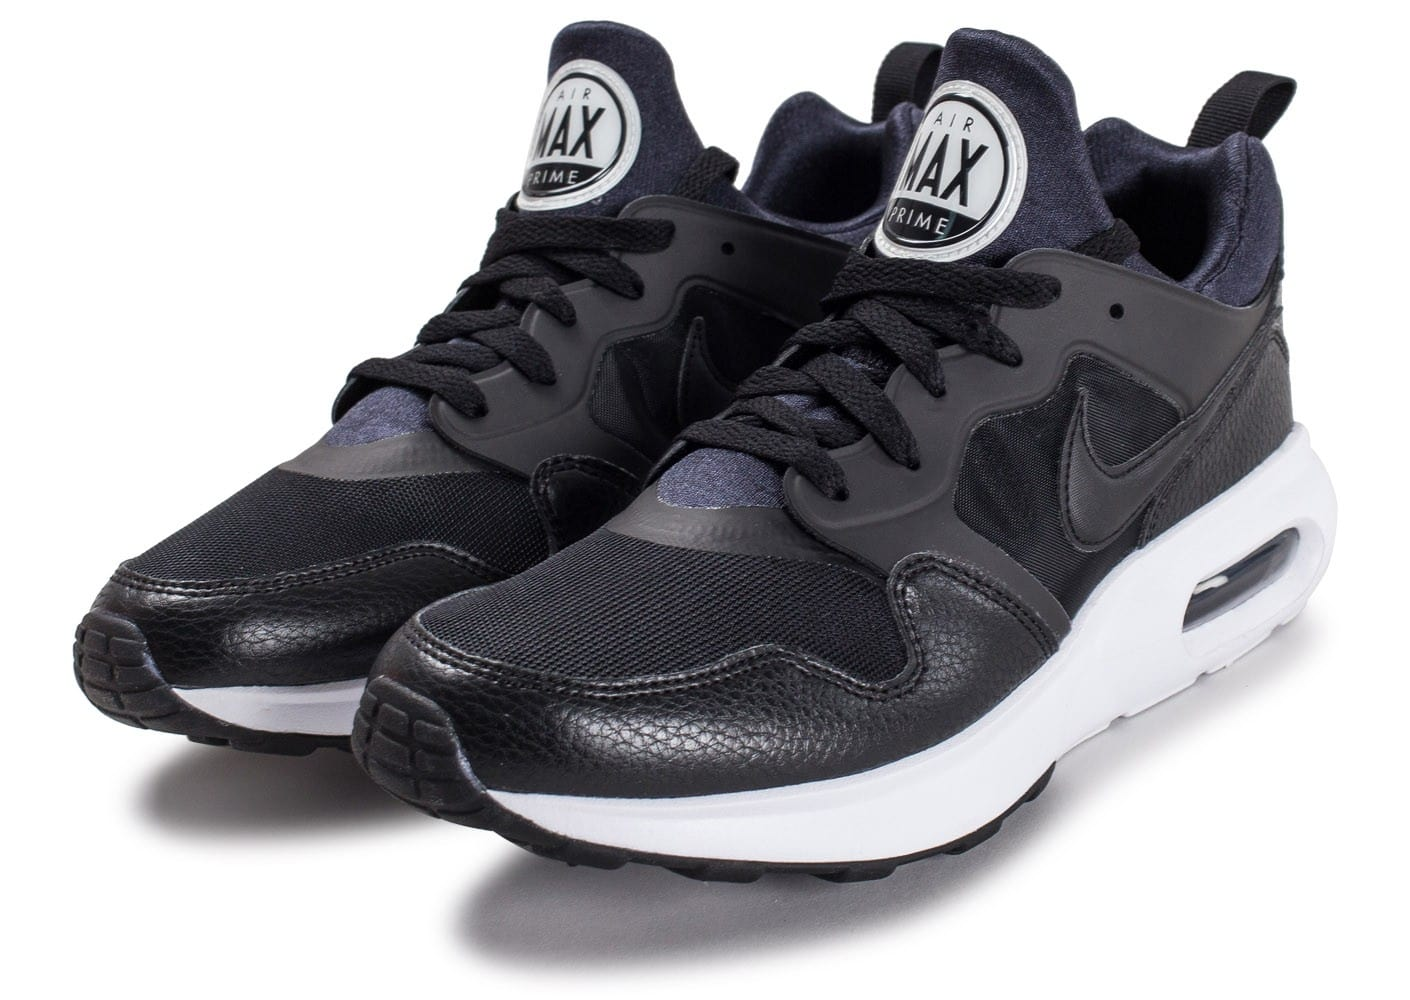 Chaussures Nike Air Max Fashion homme